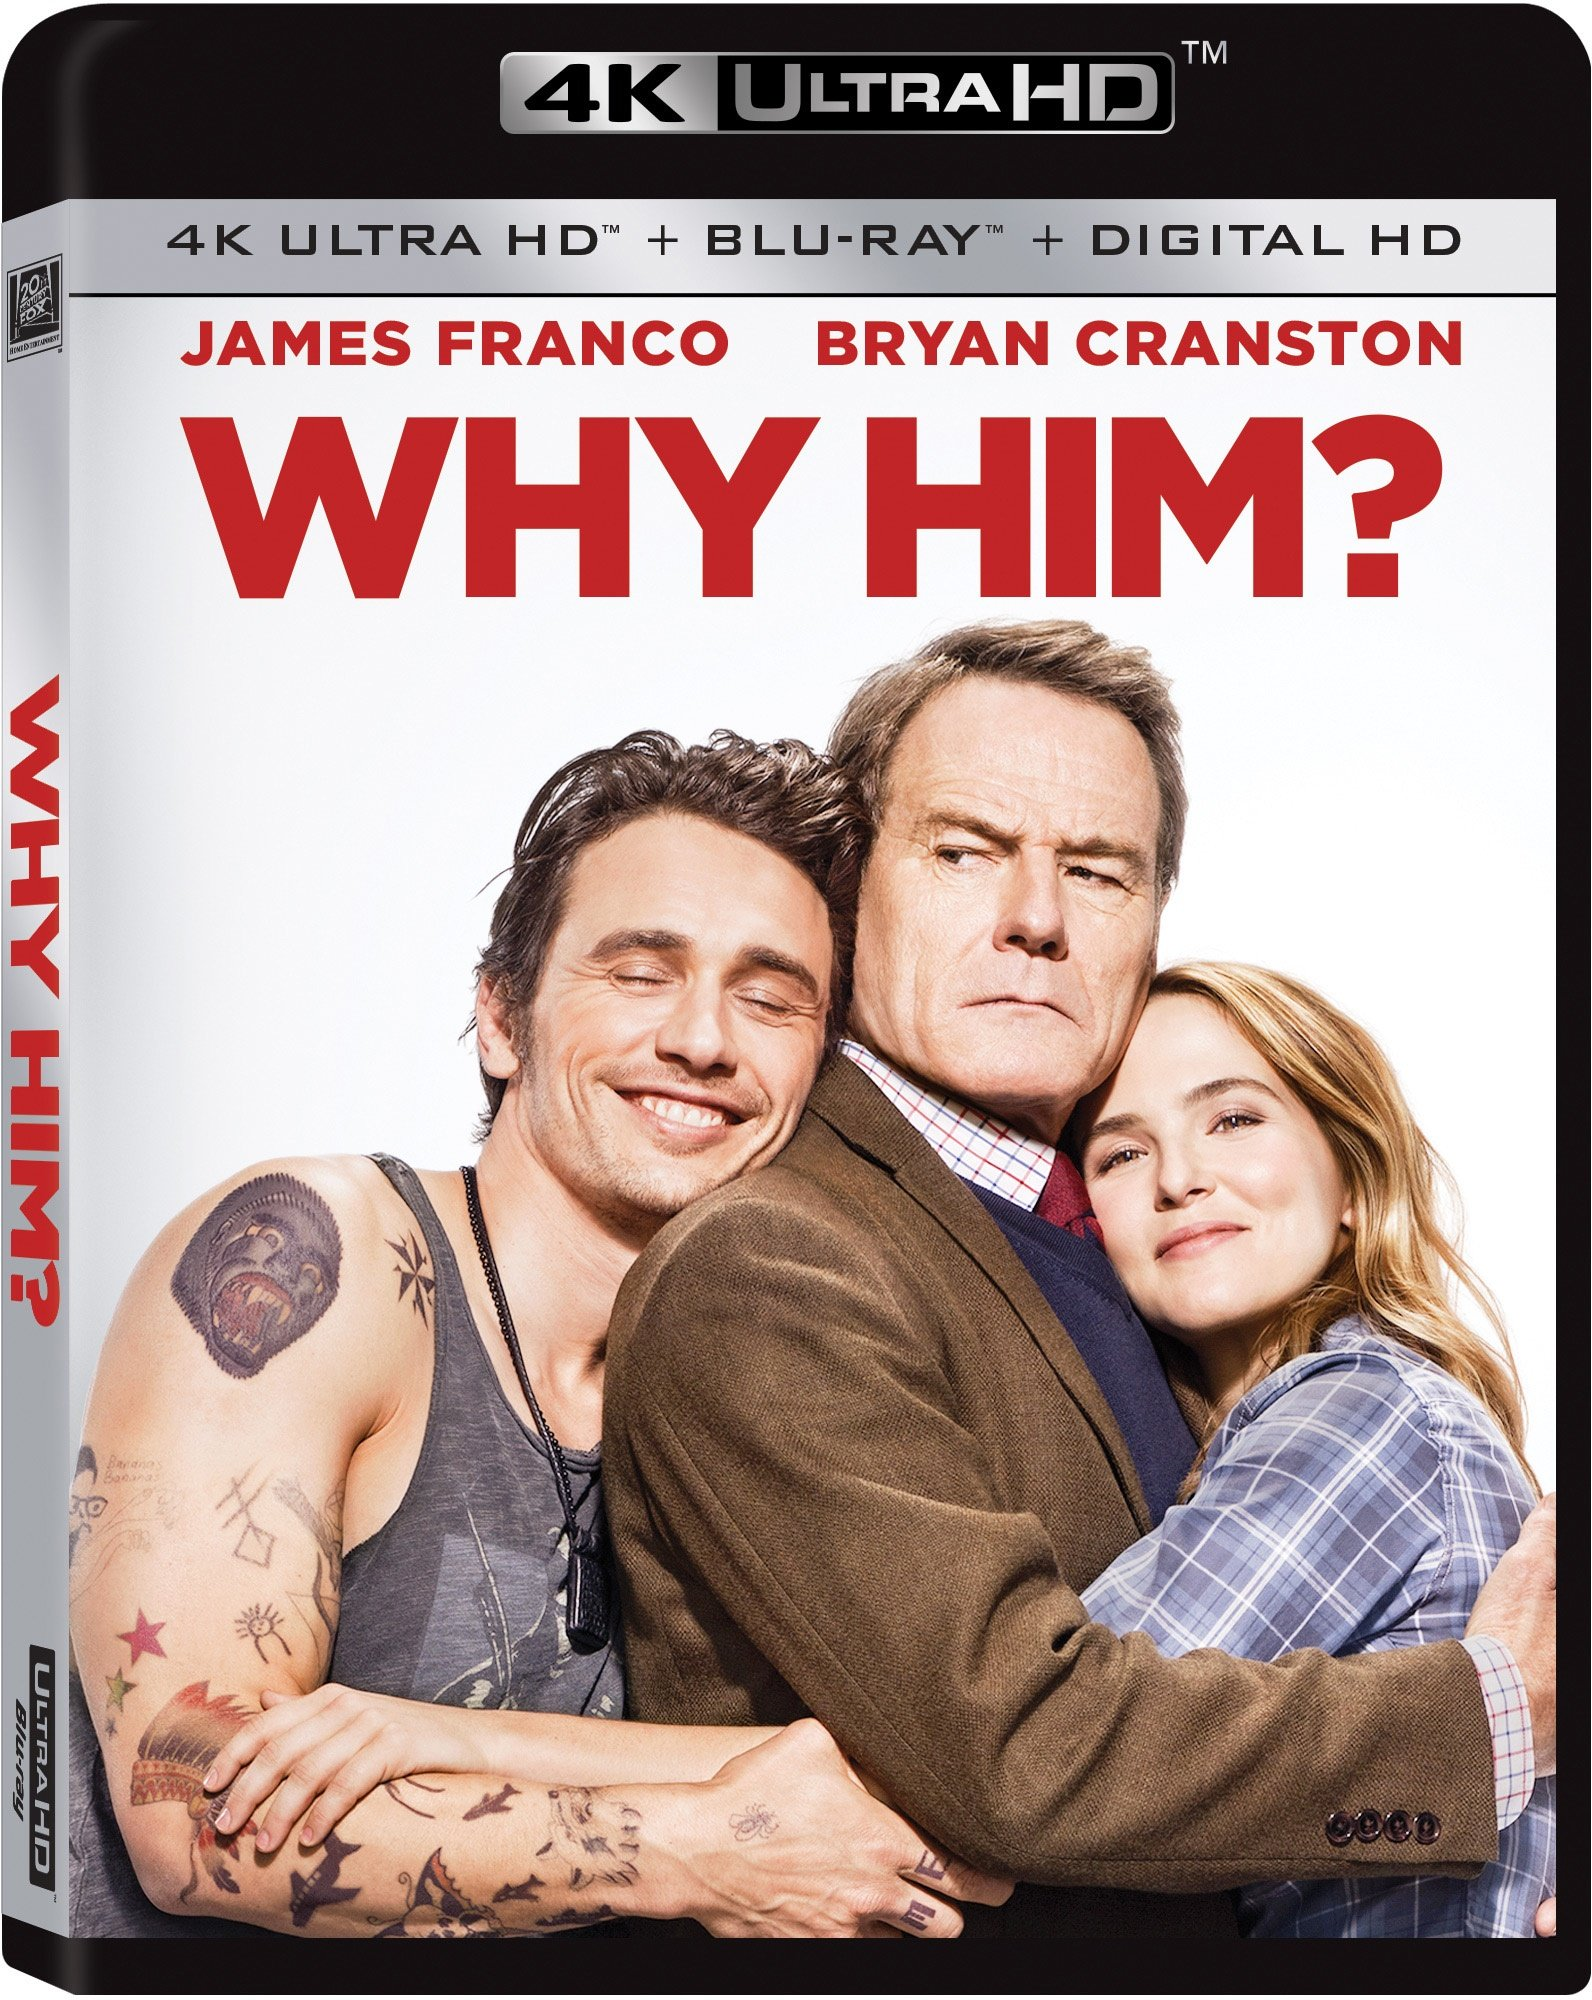 4K Blu-ray : Why Him? (4K Mastering, , Dubbed, Widescreen, Digital Theater System)